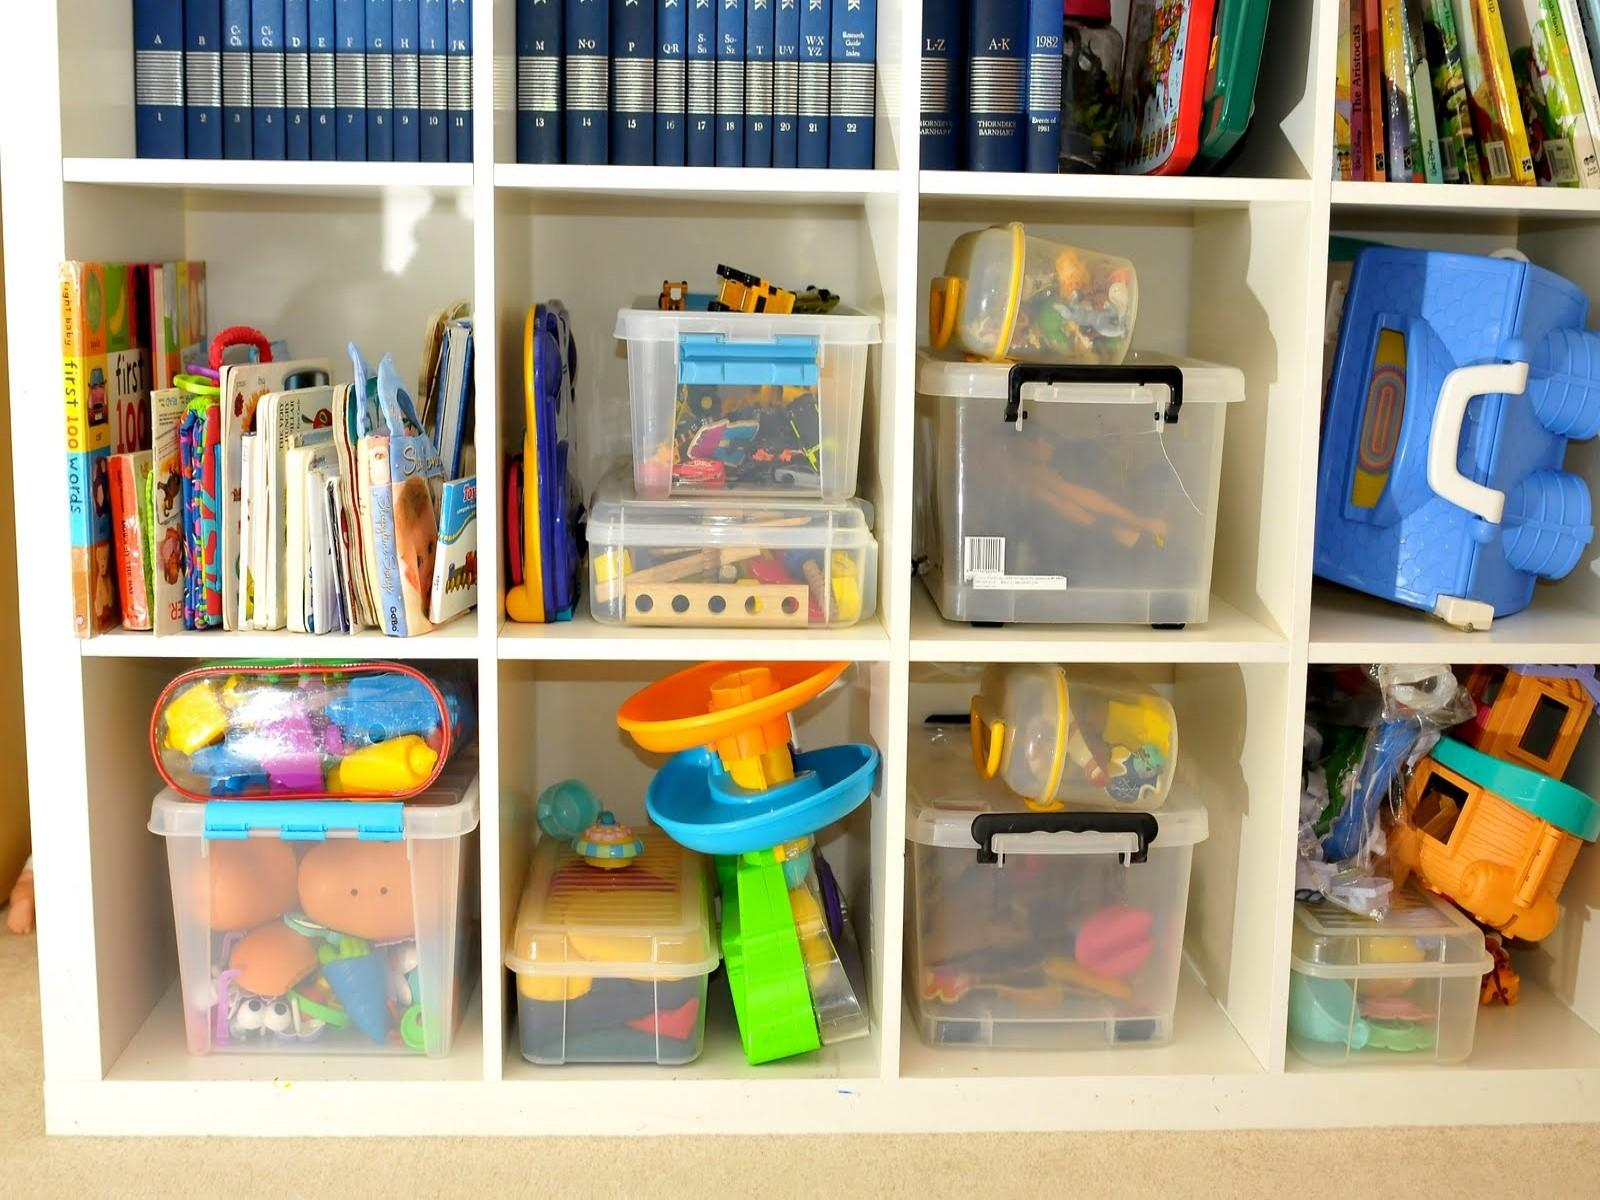 Contemporary Office Home Organization Ideas 321